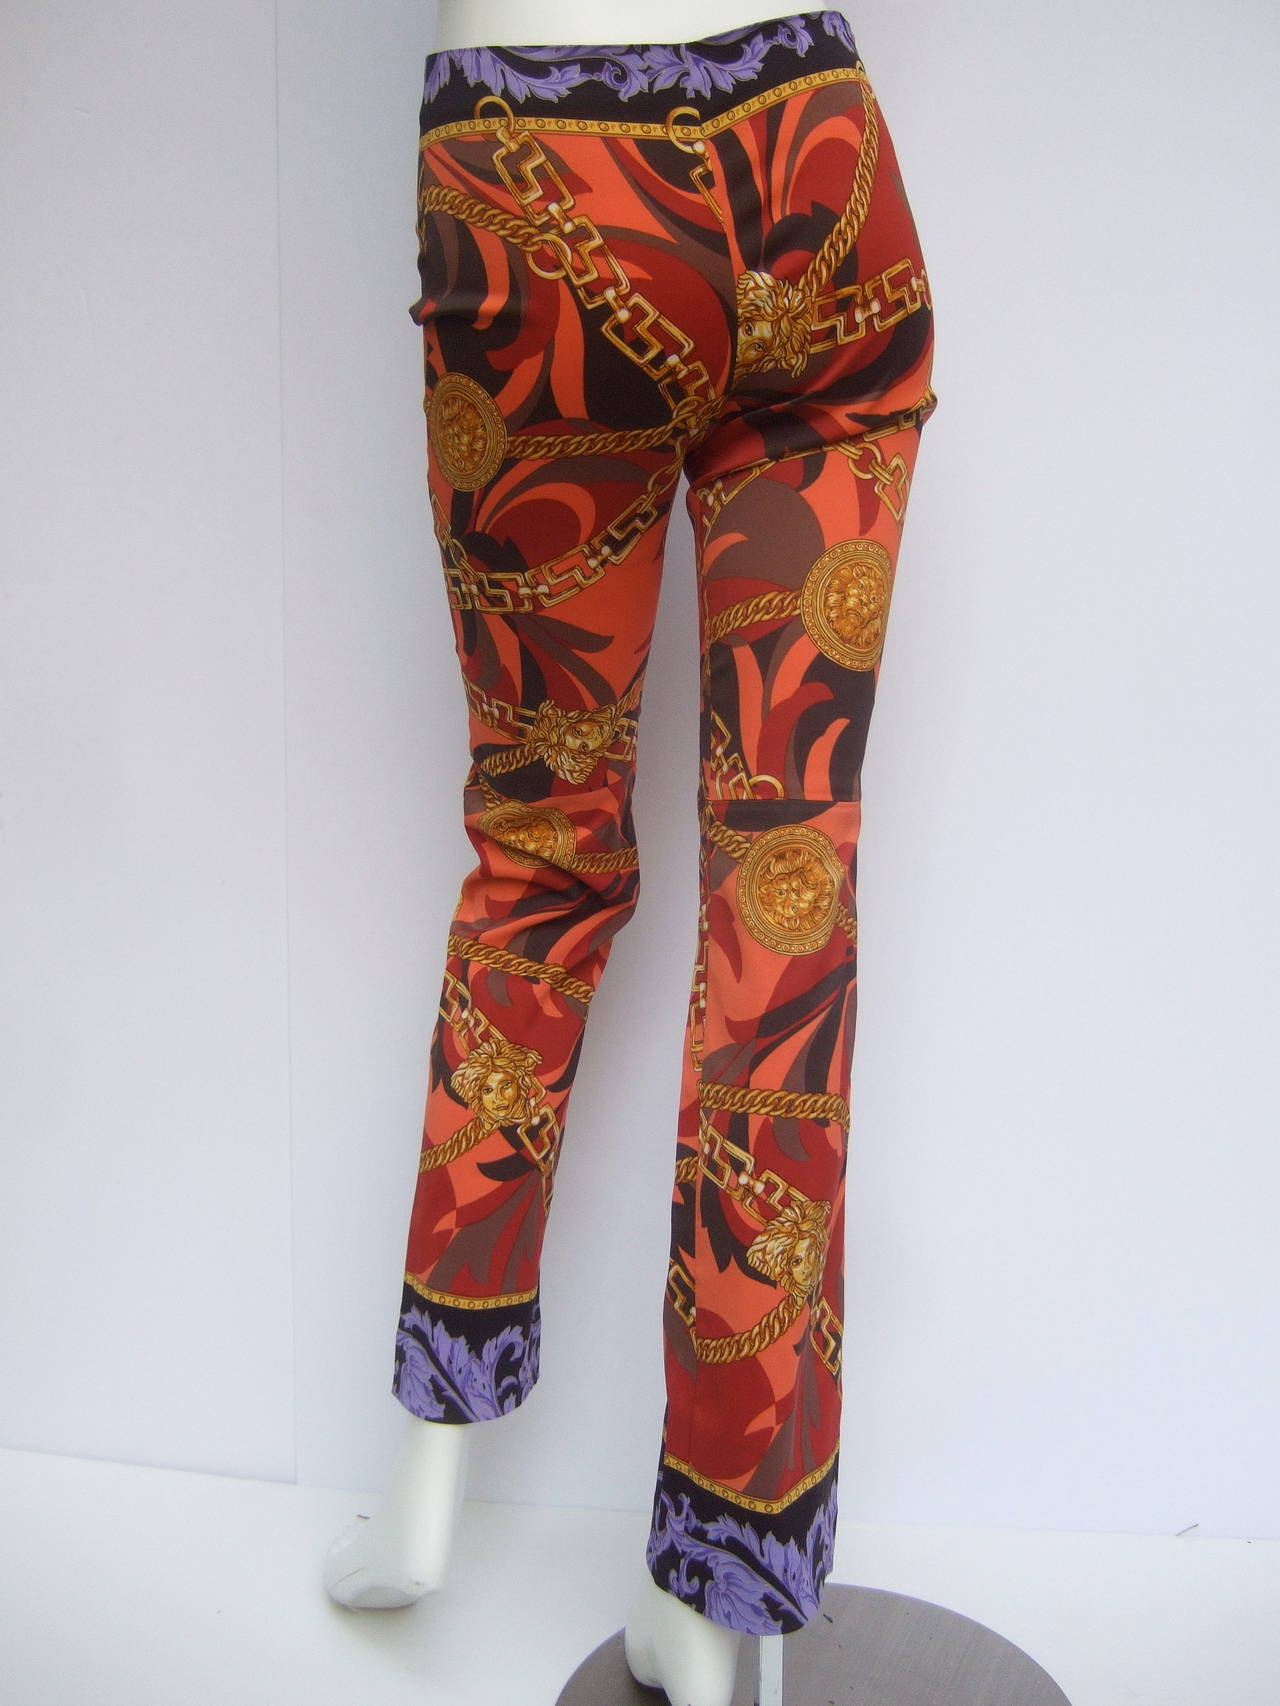 Versace Iconic Medusa Graphic Print Stretch Jeans Size 28 6